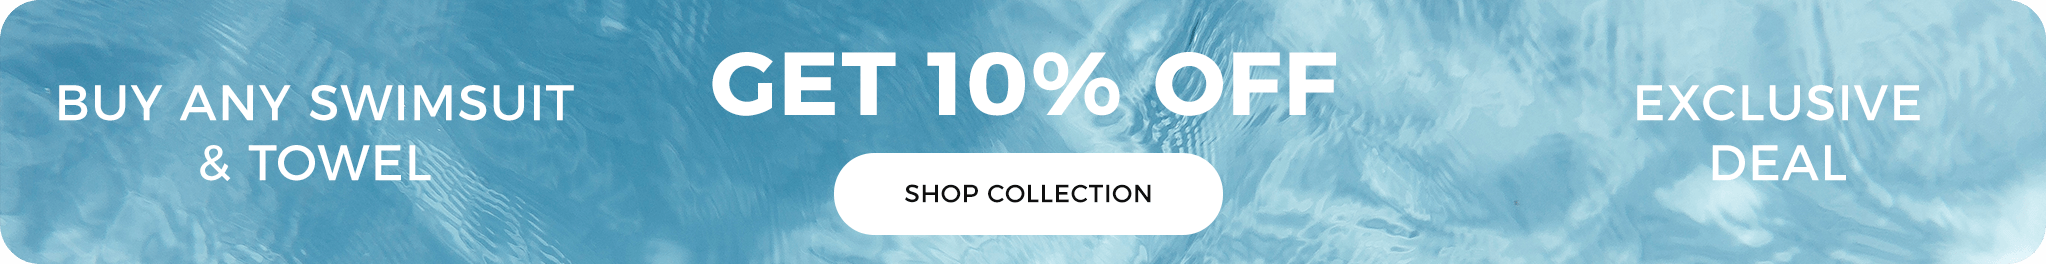 Buy Any Swimsuit & Towel, Get 10% Off. Exclusive Deal. Shop Collection.